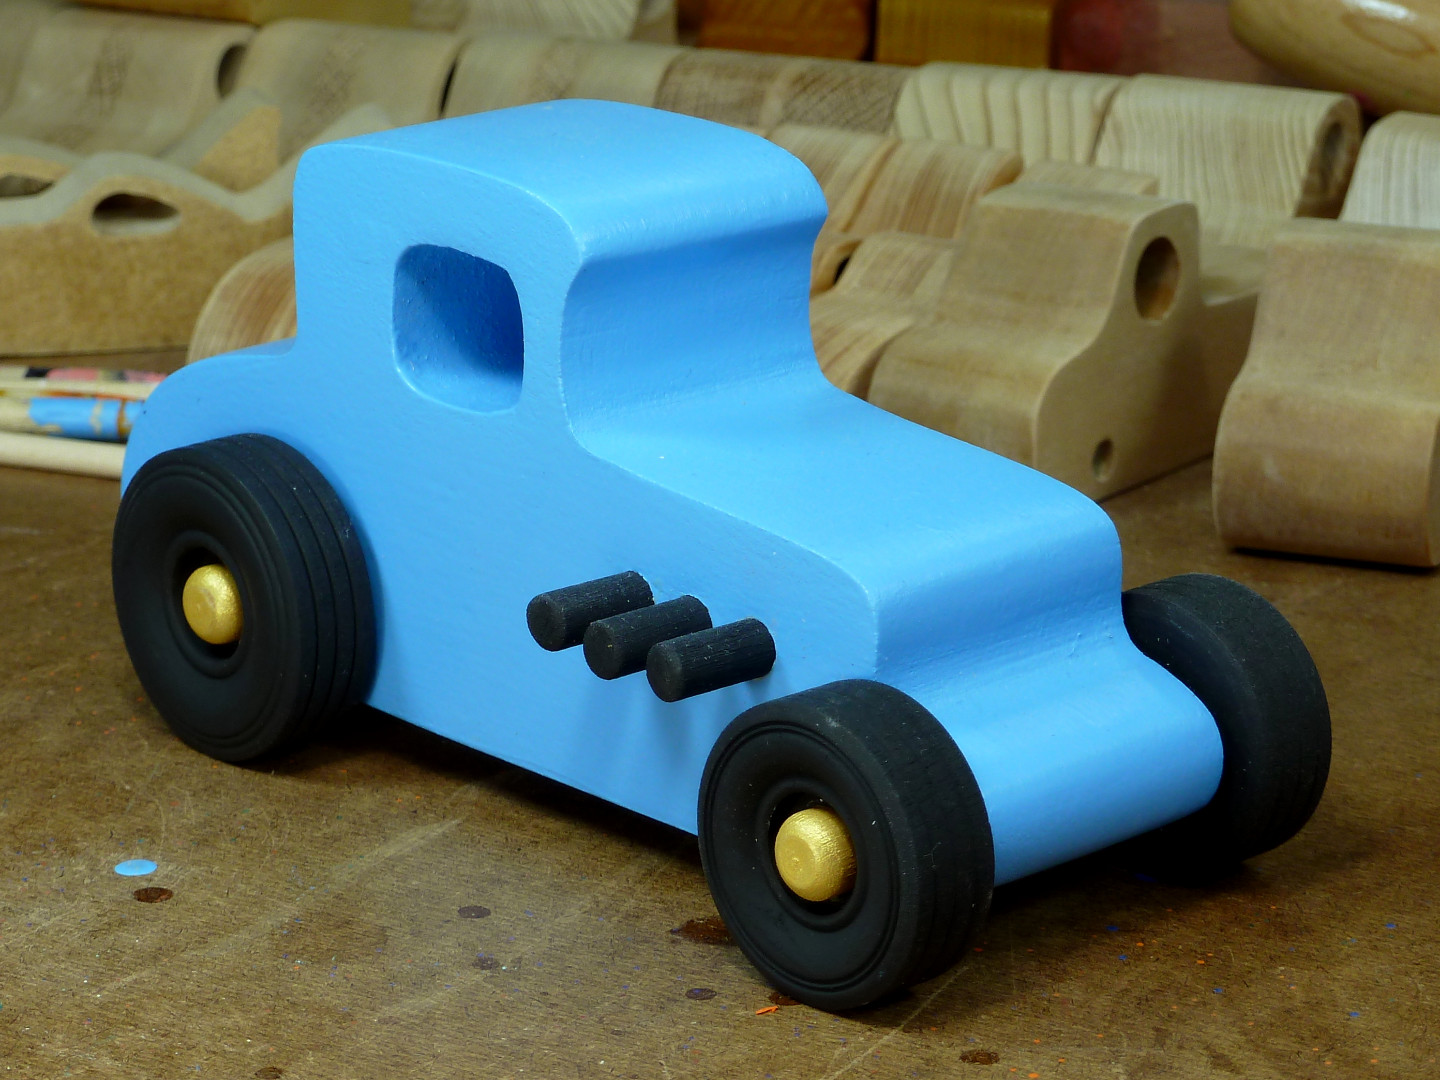 20170522-192556 Wooden Toy Car - Hot Rod Freaky Ford - 27 T Coupe - MDF - Blue - Black - Gold 02.jpg